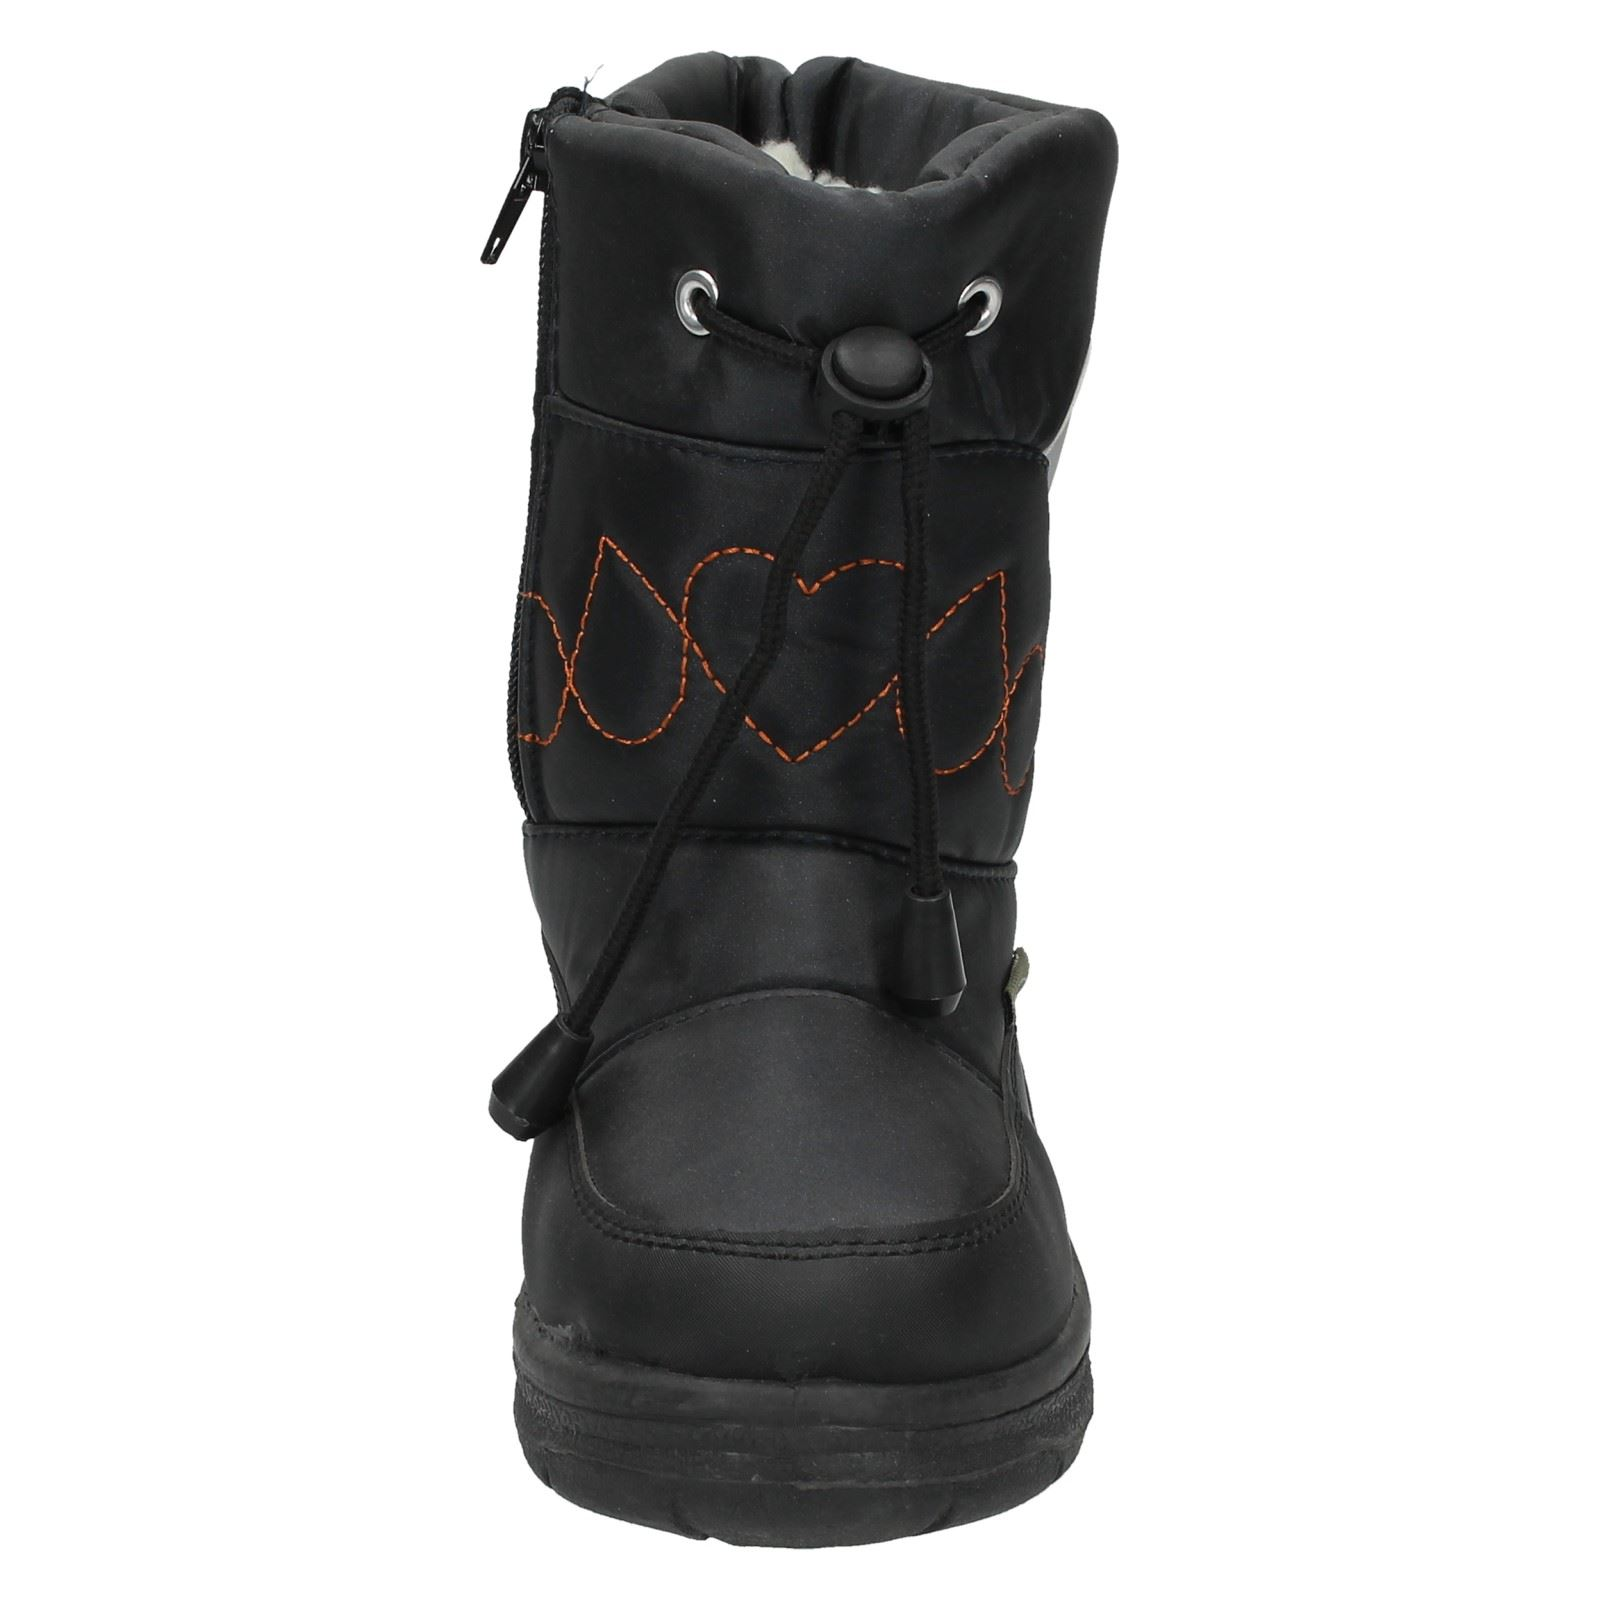 Snow Fun Boys Tie Front Embroidered Design Snow Boots 8.561801A